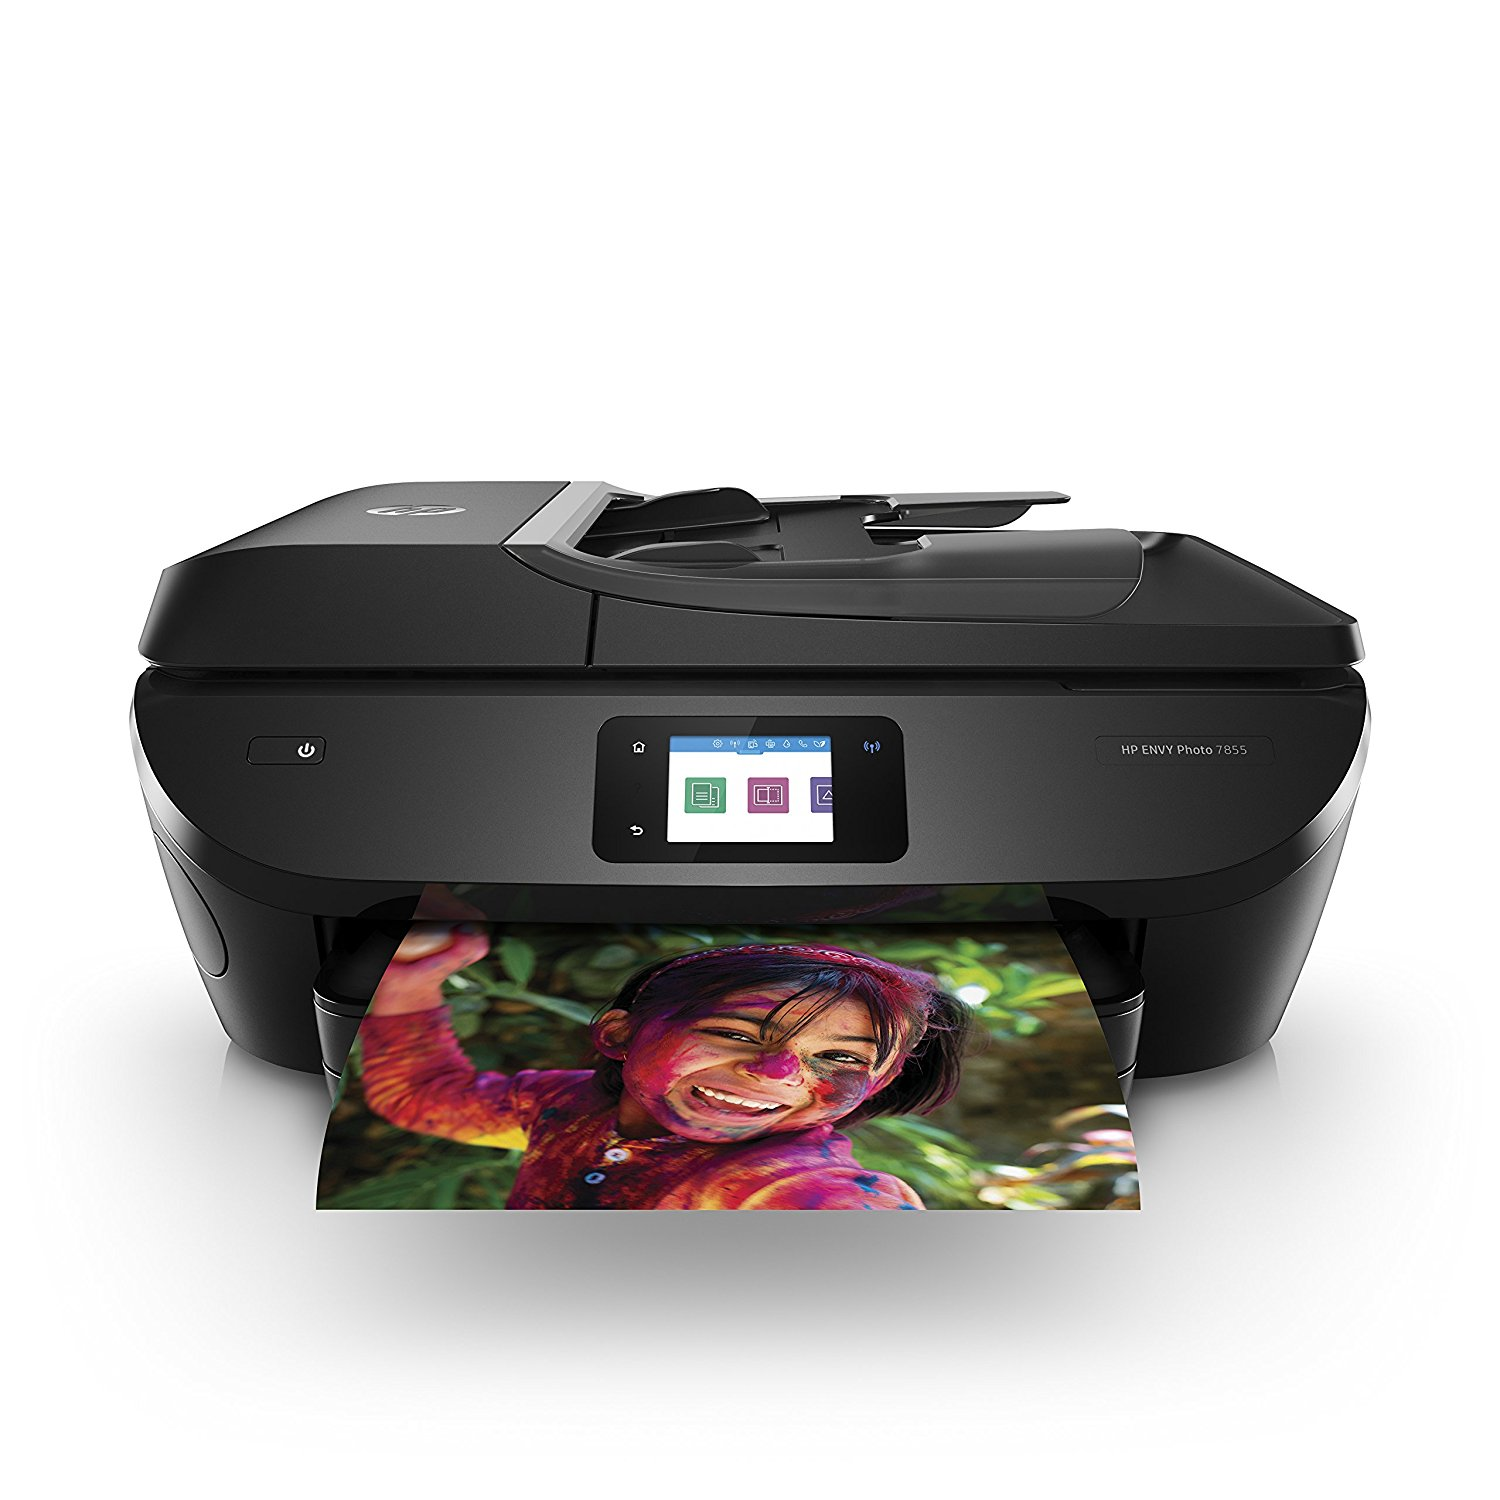 HP ENVY Photo 7855 All in One Photo Printer with Wireless Printing